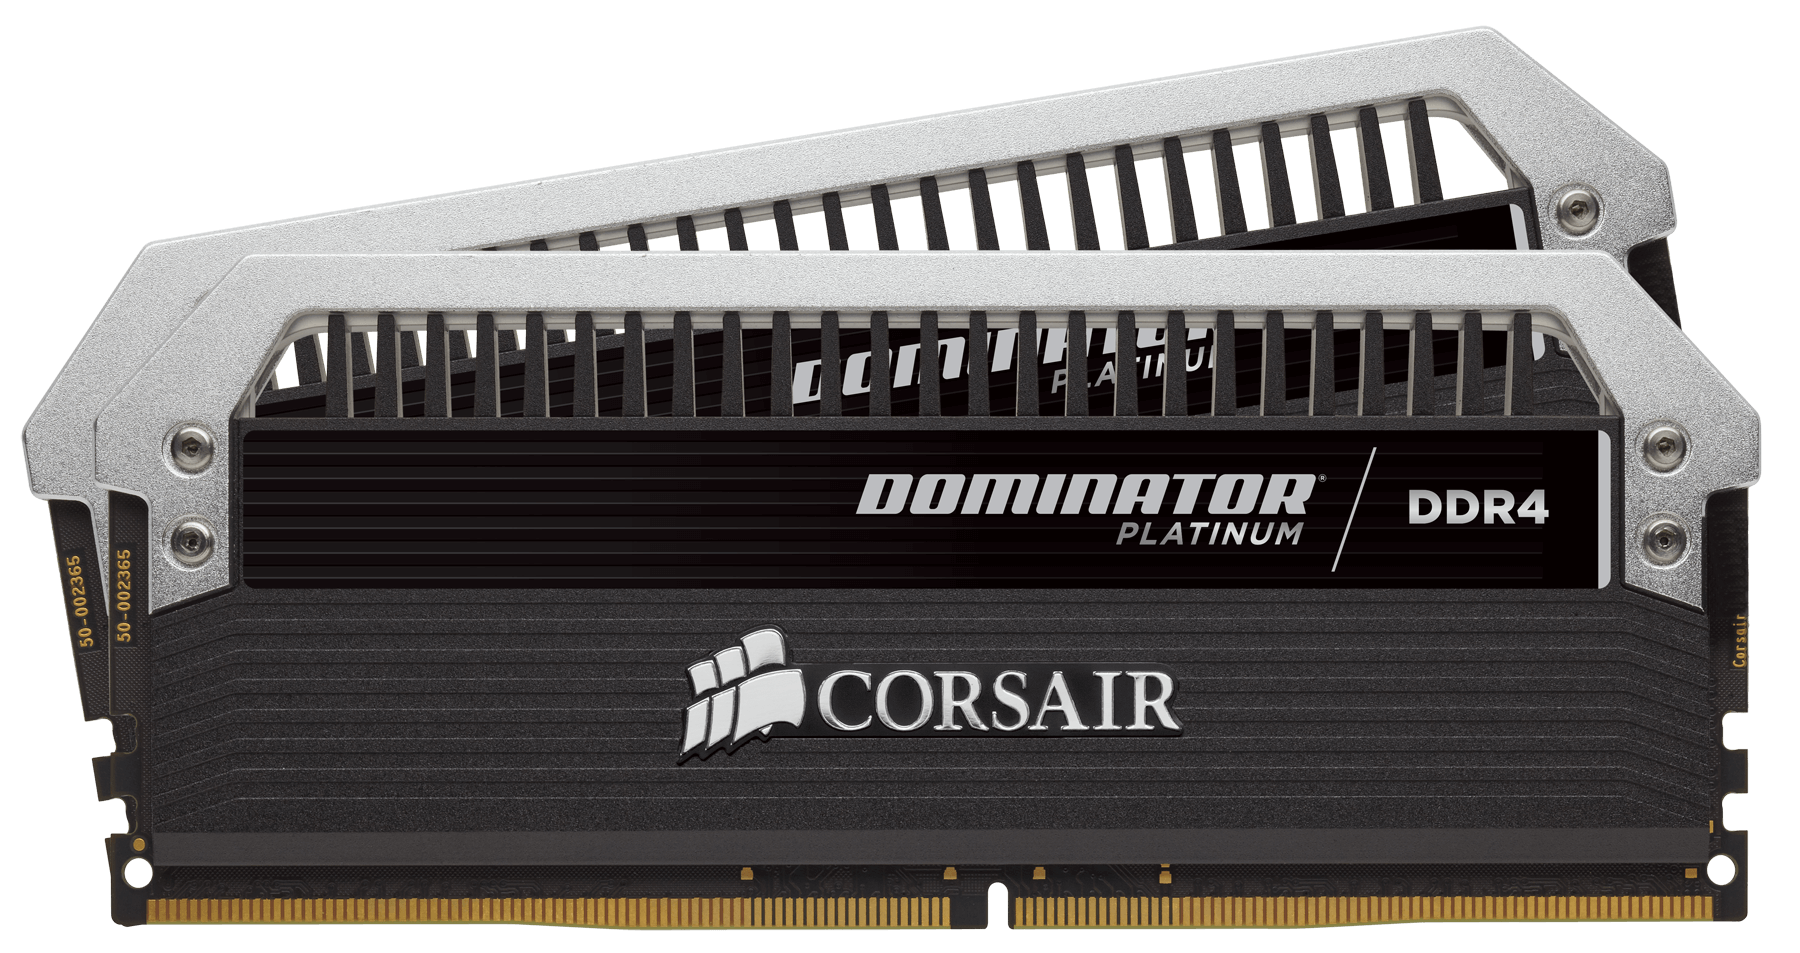 Corsair Dominator Platinum DDR4 16GB 2X8GB 3466MHz